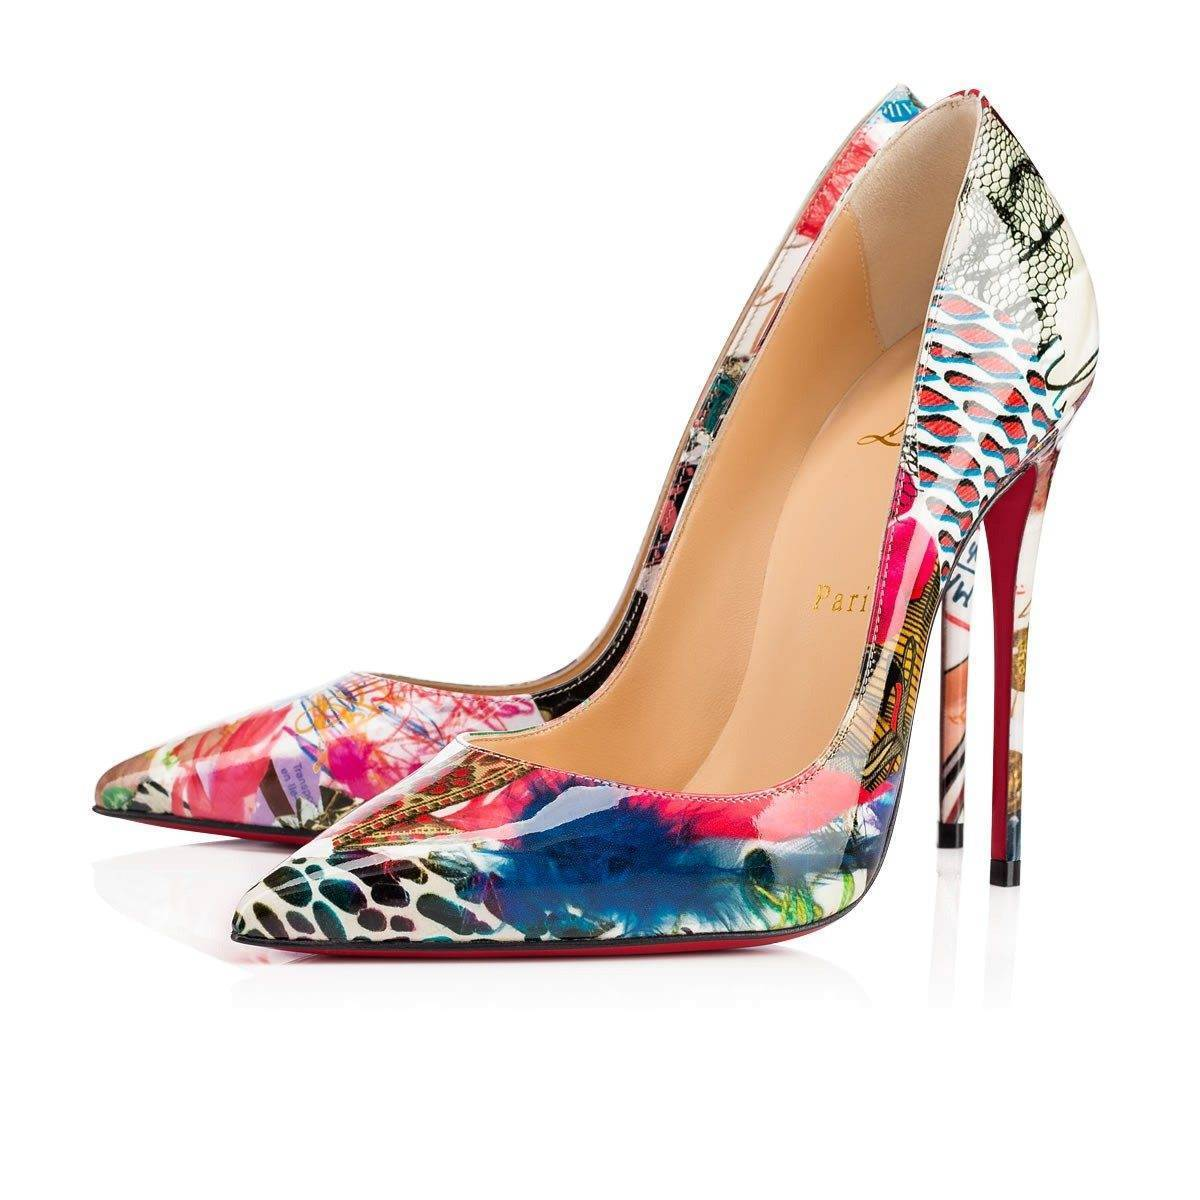 Christian Louboutin - towering heights of stiletto success